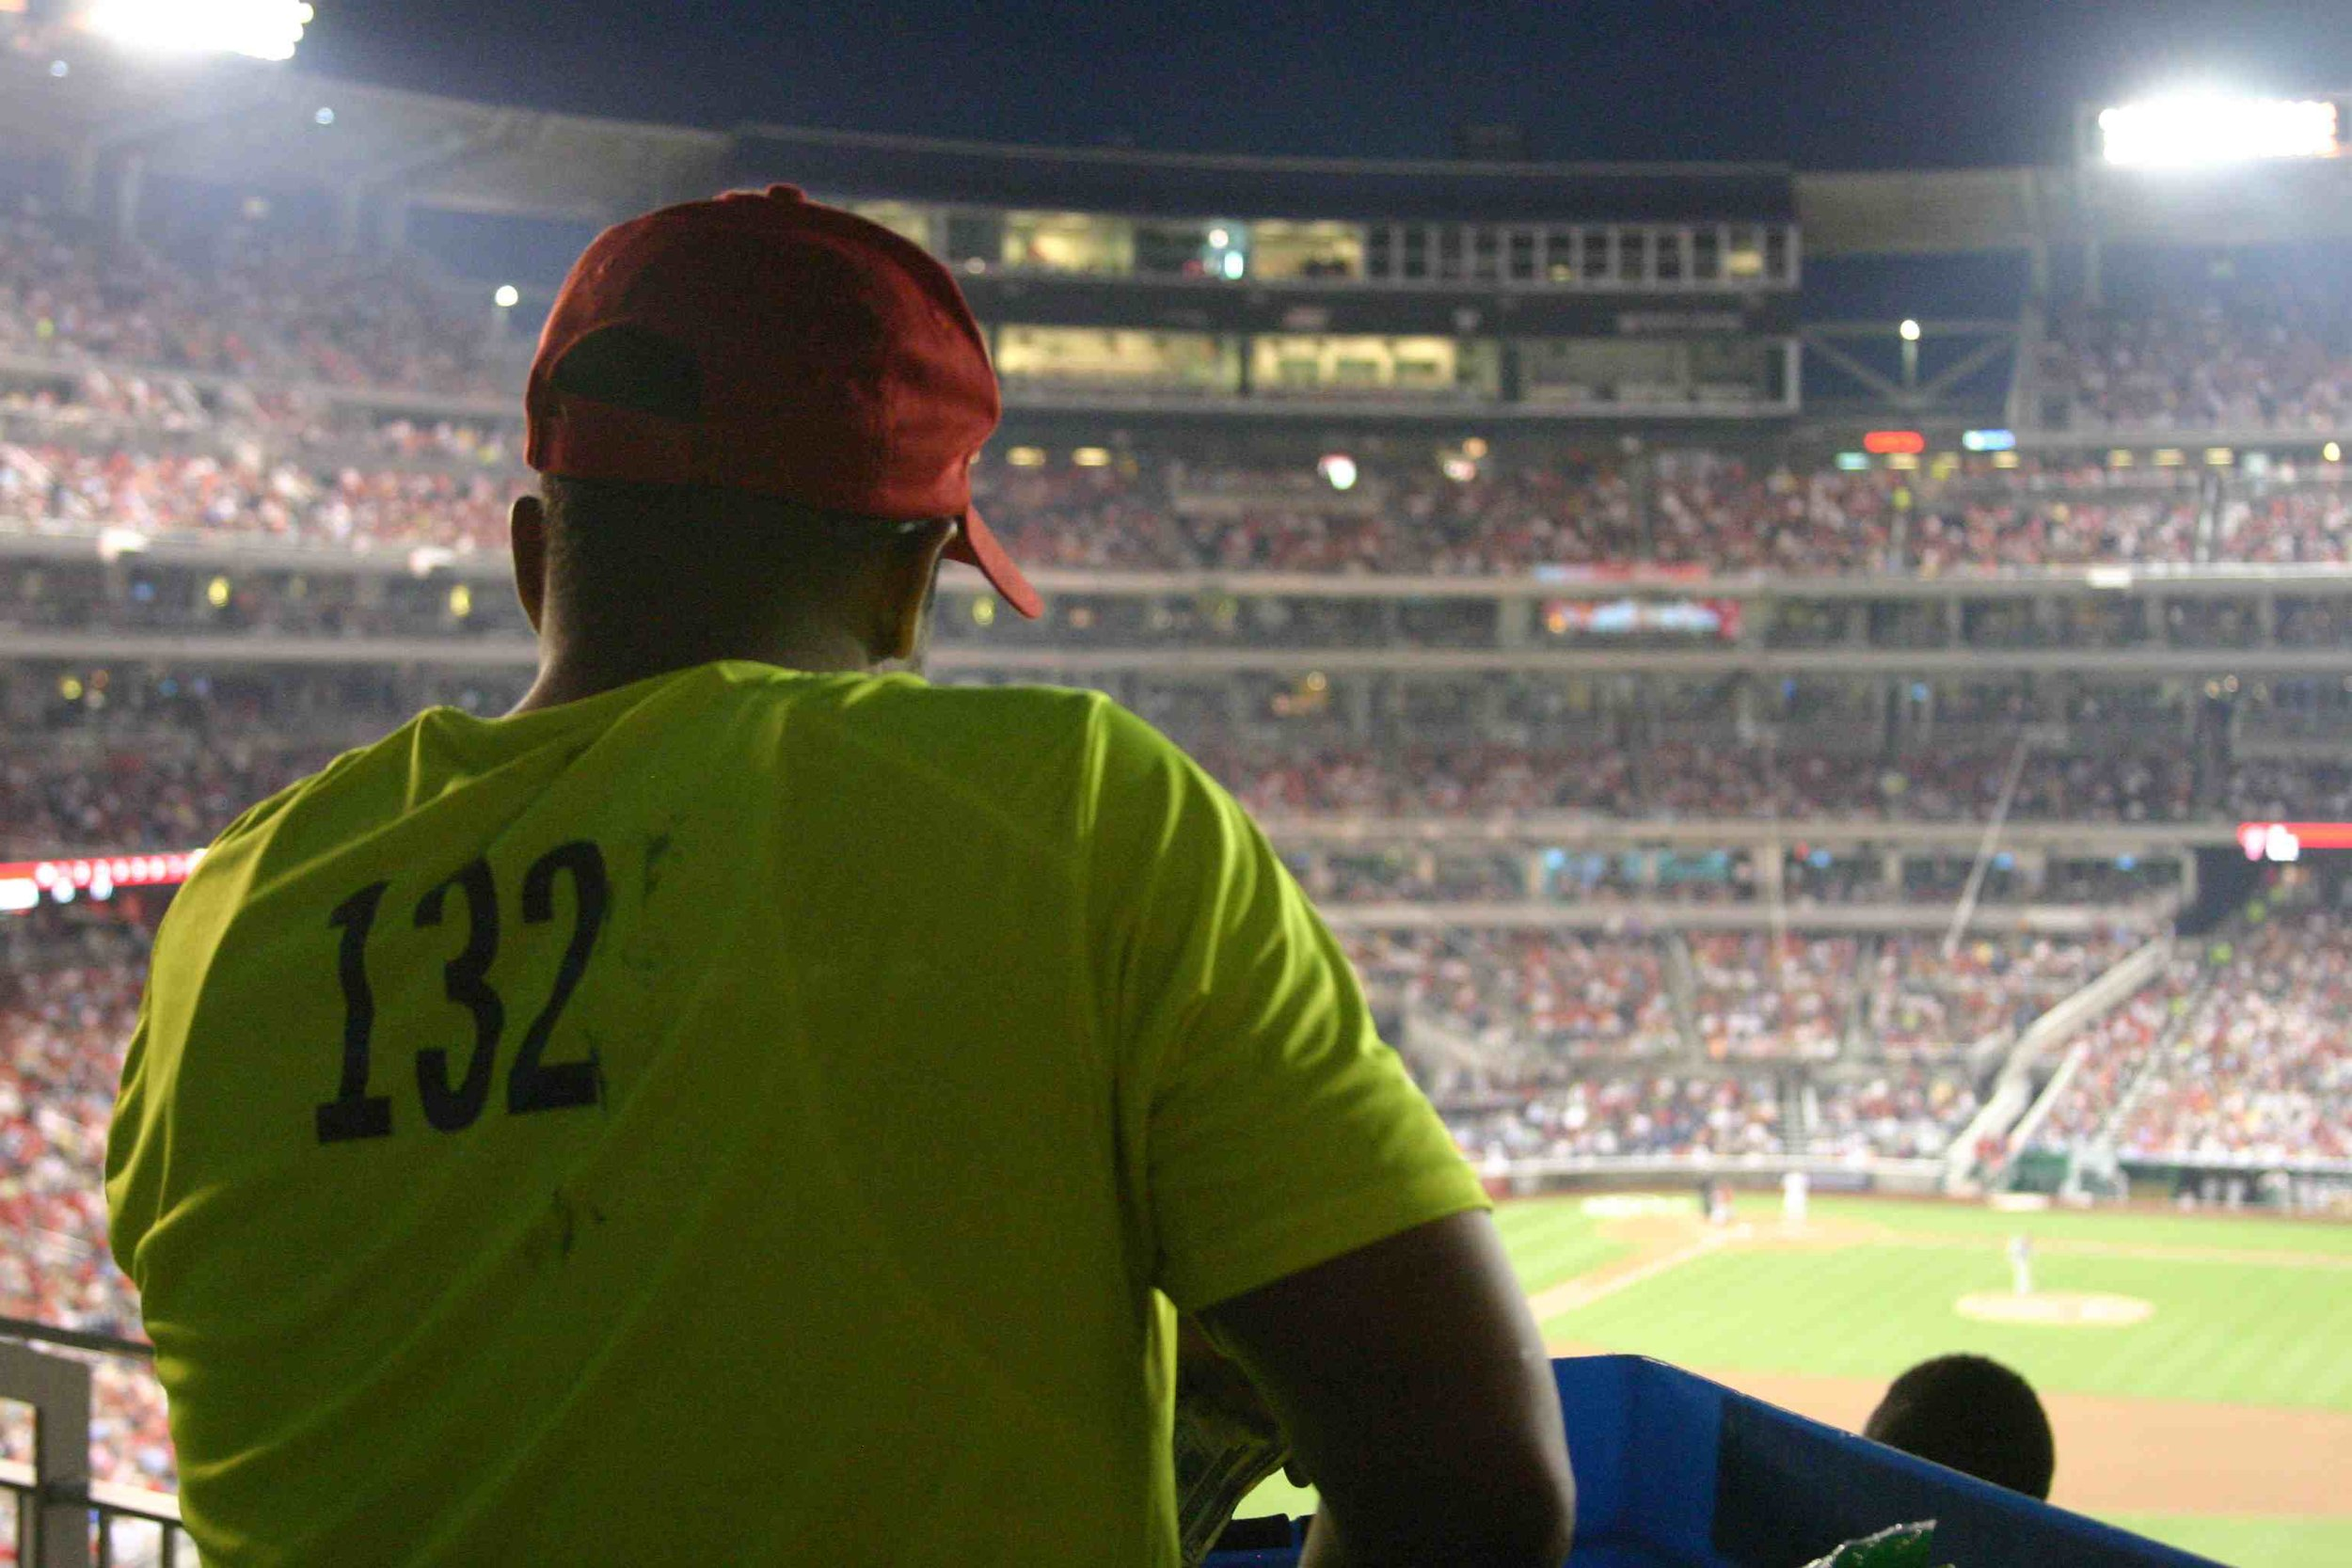 Nationals Park, Washington, DC, Summer 2012, Photo Credit: Kate Gallery